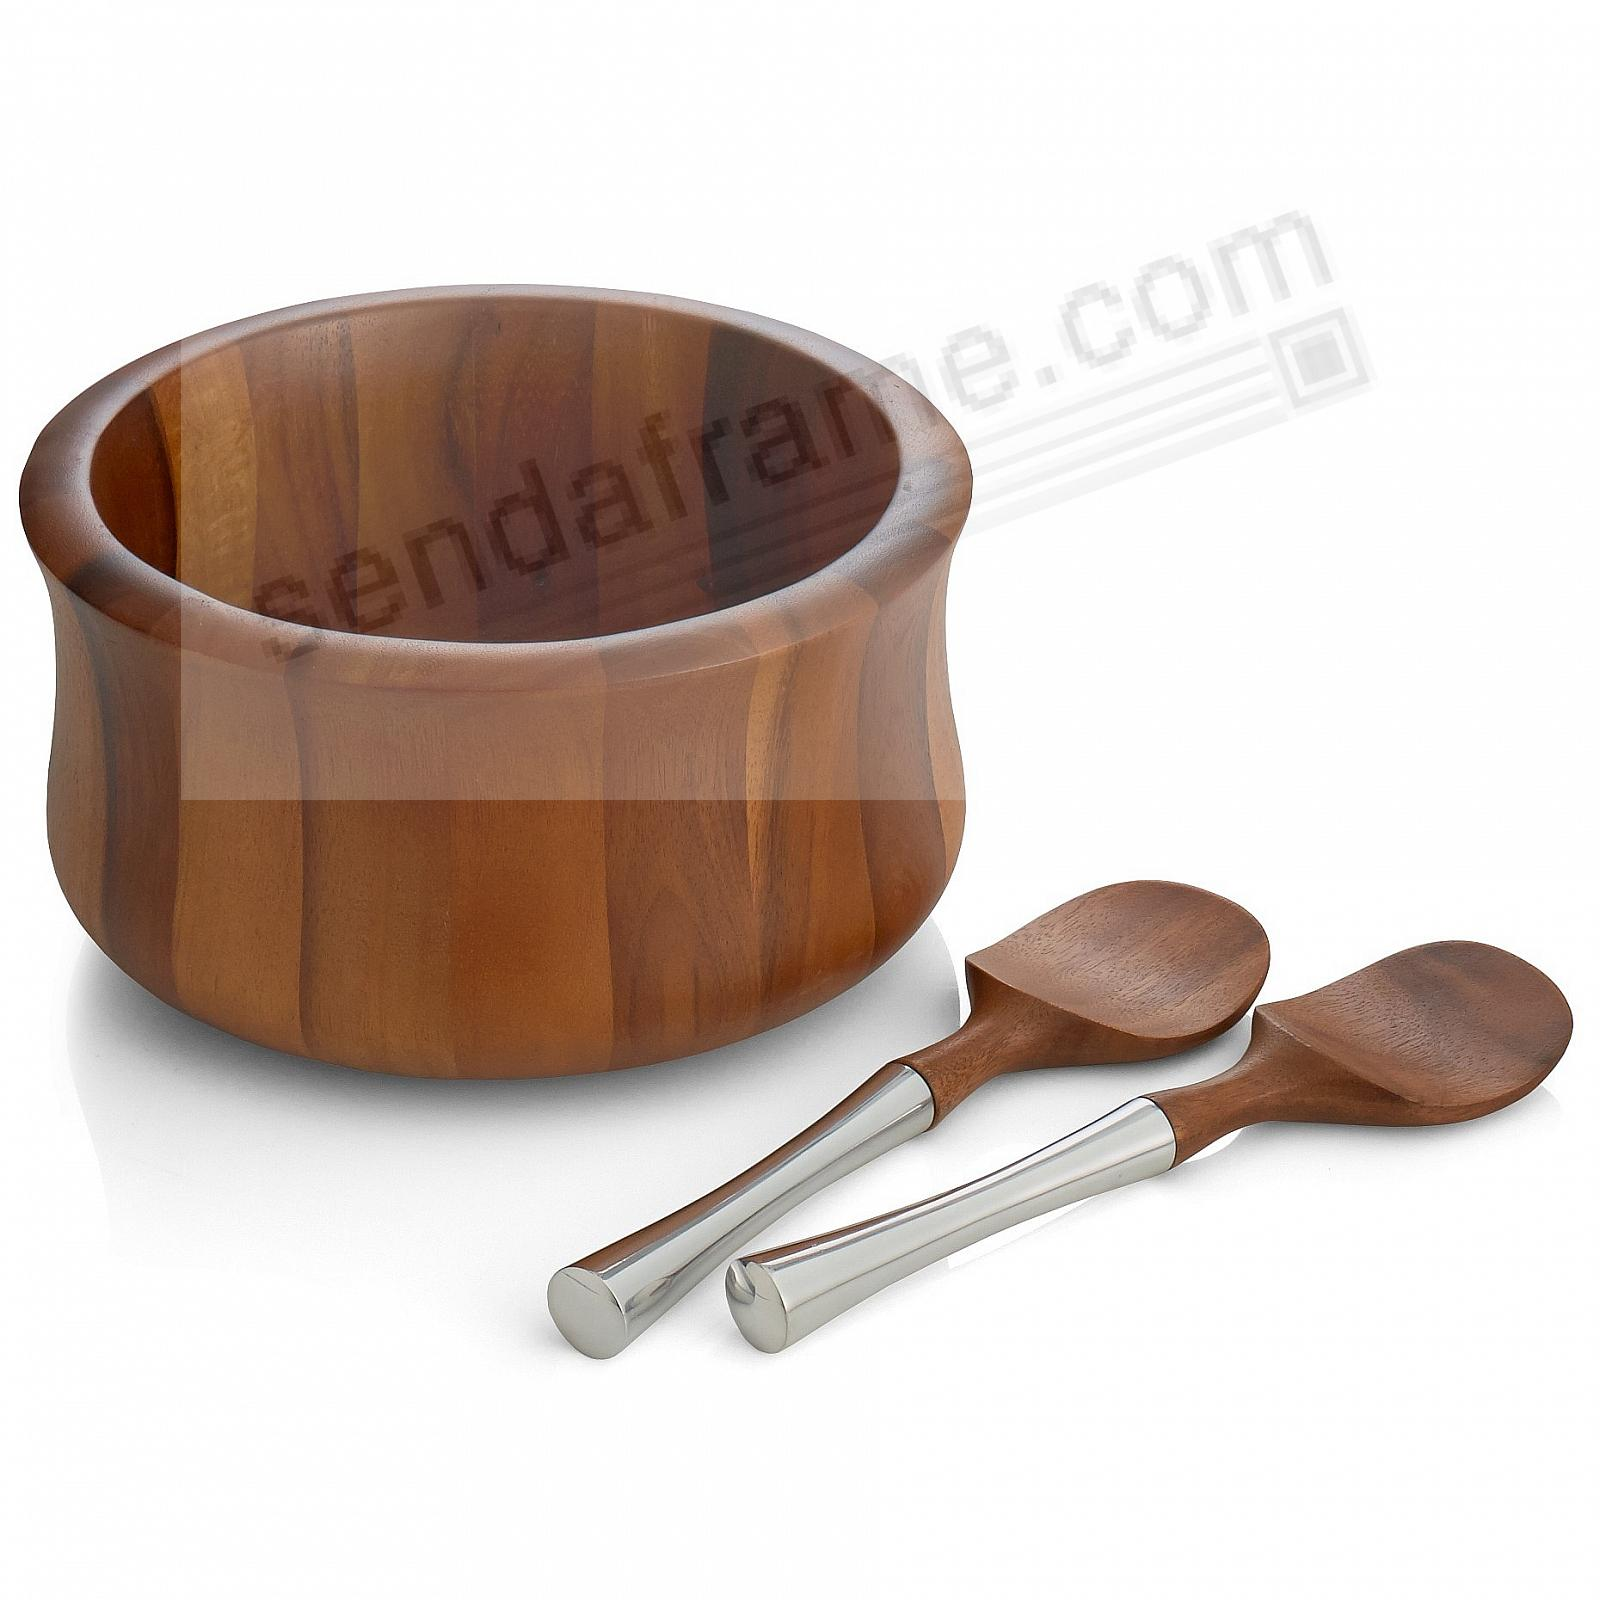 The Original NARA SALAD BOWL w/SERVERS crafted by Nambe®